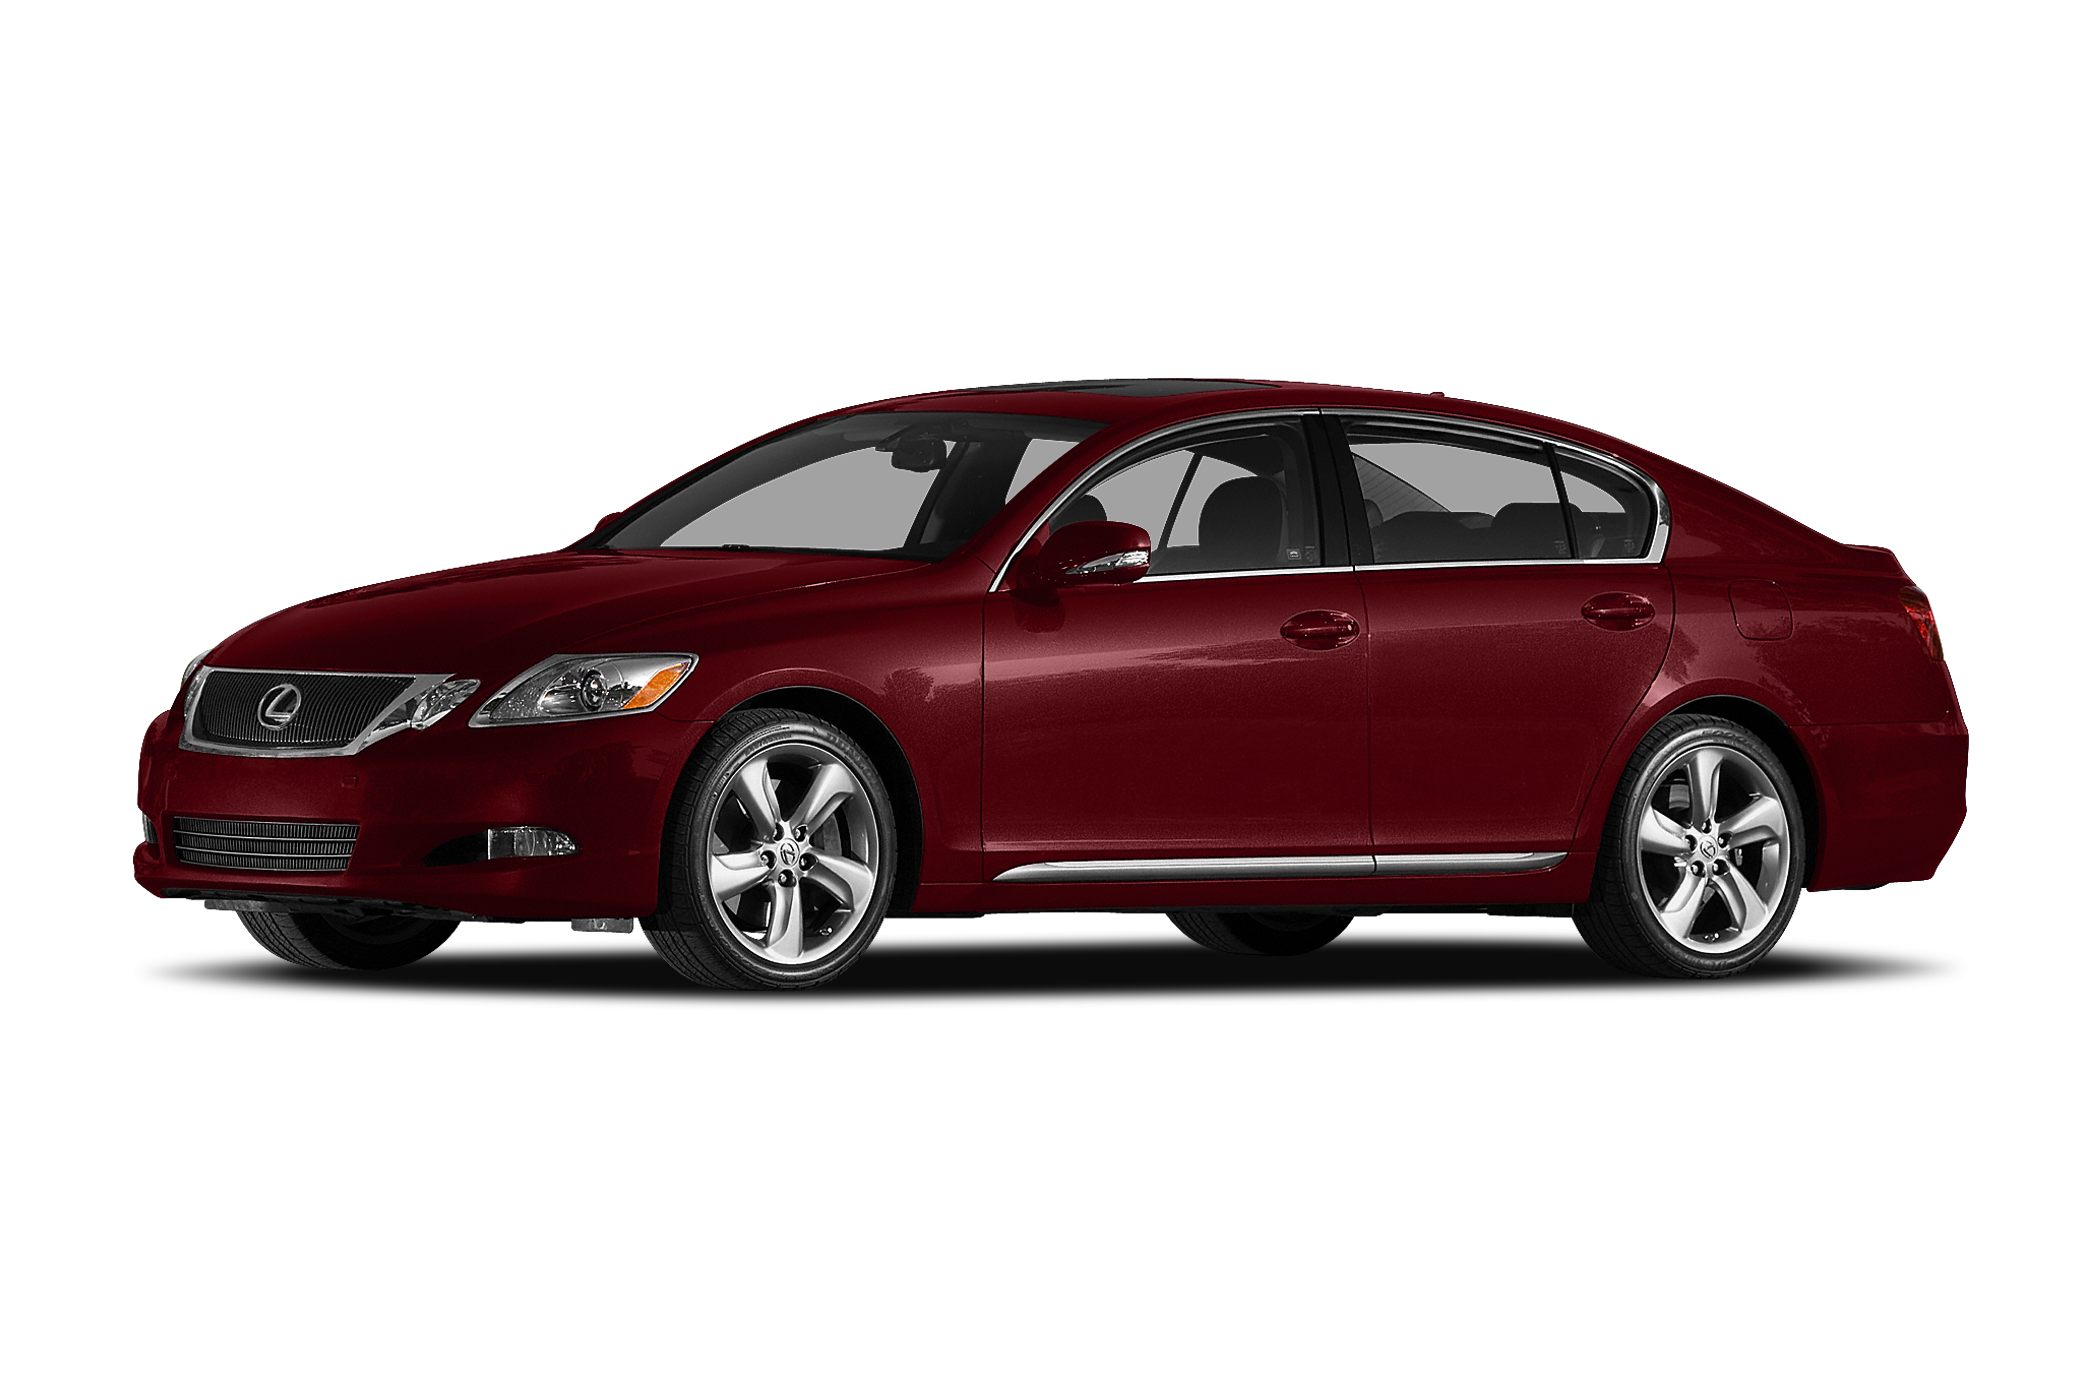 lexus gs 460 news photos and buying information autoblog. Black Bedroom Furniture Sets. Home Design Ideas